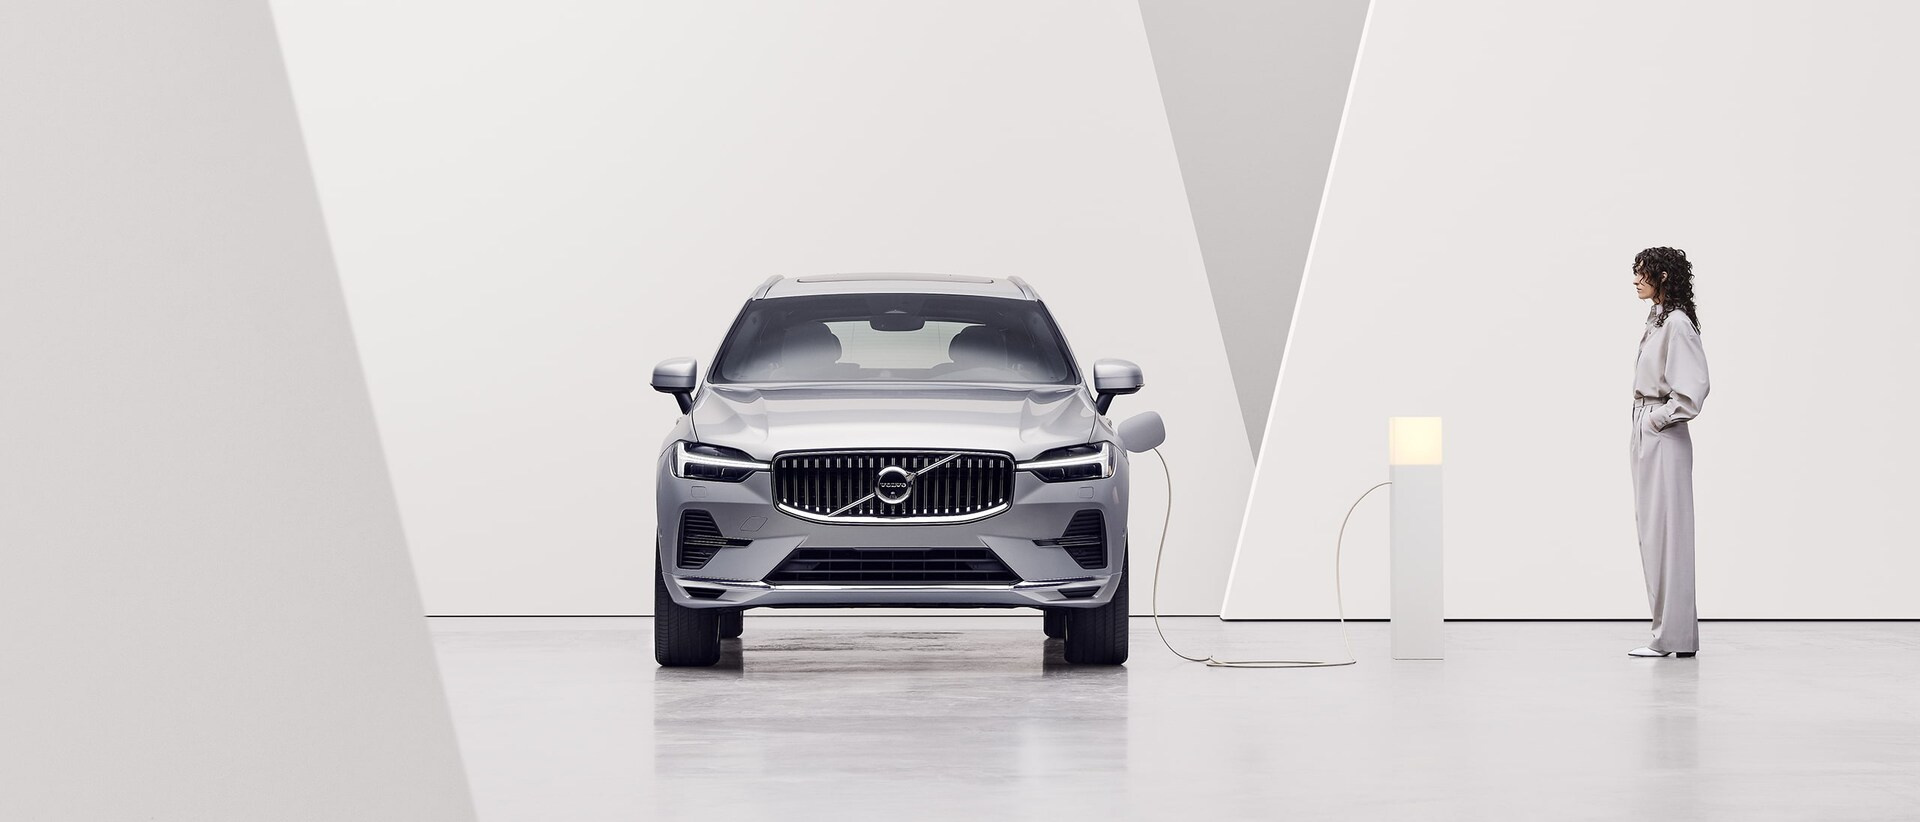 xc60-recharge-gallery-1-21x9